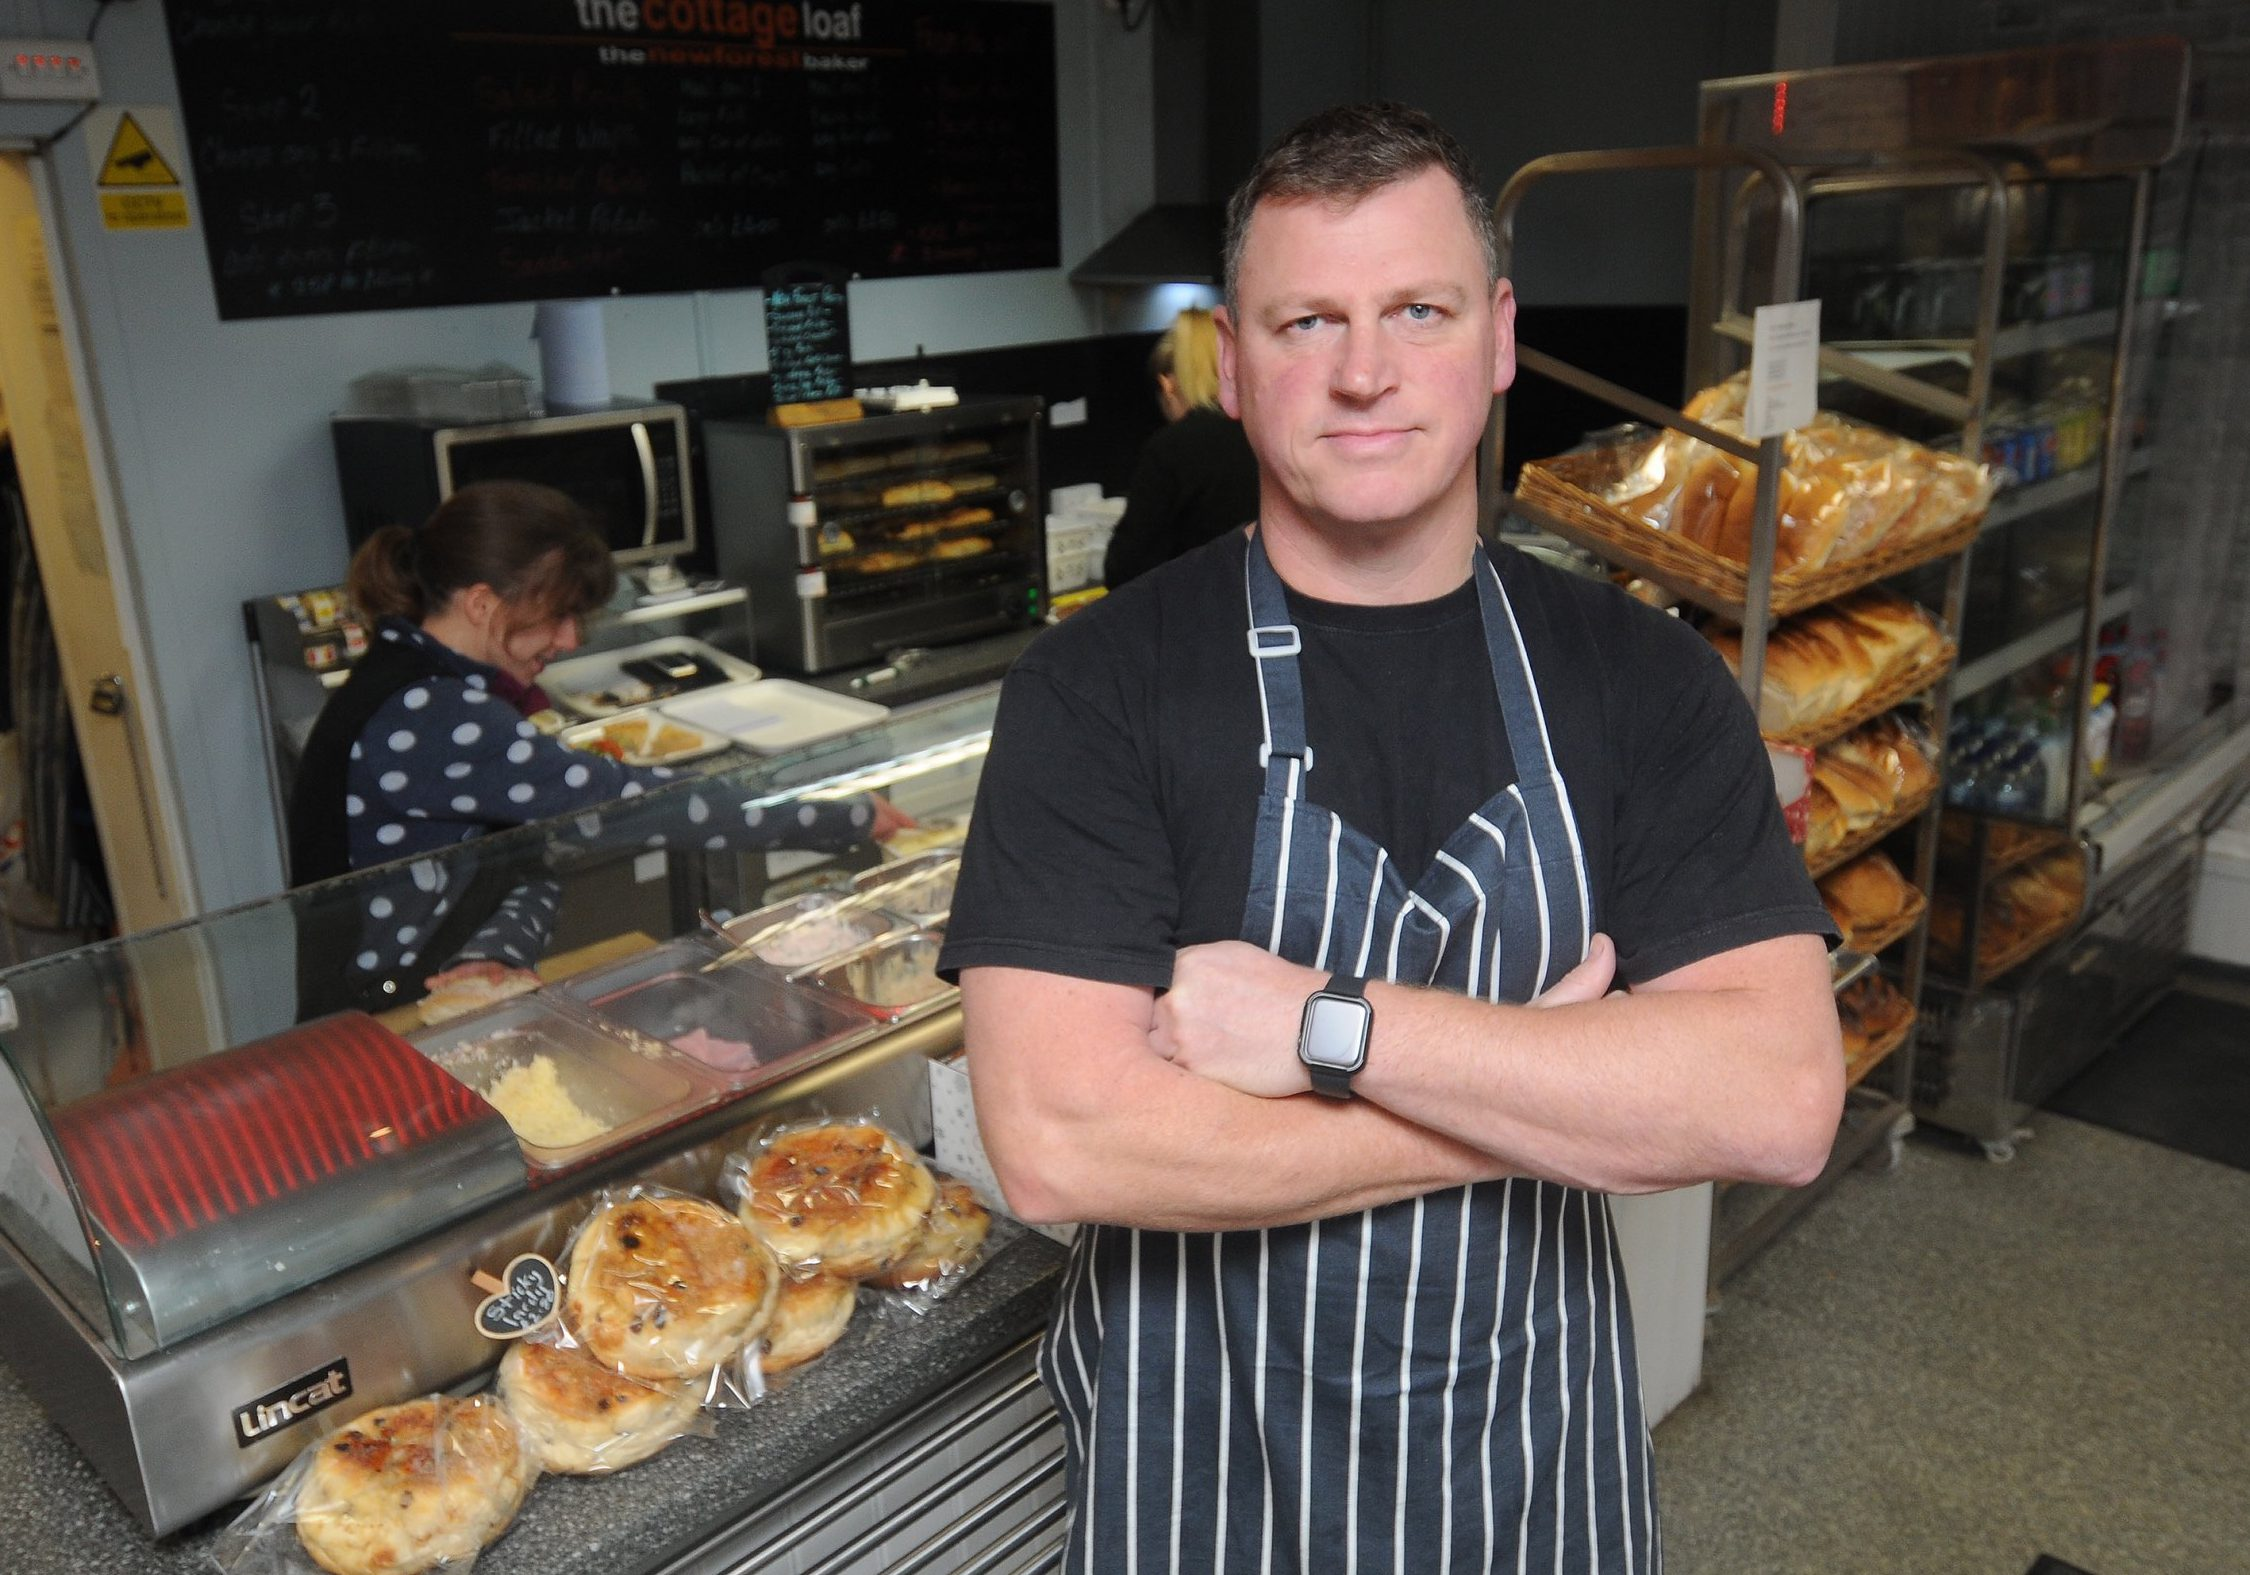 Pictured: Mike Penton in his Bakery A baker whose business was 'ransacked' by burglars reported it to police and was stunned to be told he probably wouldn't see an officer - but he could investigate the break-in himself if he wanted. Shocked Mike Penton called police after he arrived at his bakery to find it had been broken into, with two safes stolen and his till 'smashed to pieces'. He called the non-emergency 101 number after discovering a 'substantial amount' of money had been stolen and a forensic officer was then sent to The Cottage Loaf bakery in Fordingbridge, Hants, a day later. But when he had not heard from an actual police officer after five days, he called 101 again only to be told it would be unlikely because commercial break-ins were 'treated differently'. SEE OUR COPY FOR MORE DETAILS. ? Salisbury Journal/Solent News & Photo Agency UK +44 (0) 2380 458800